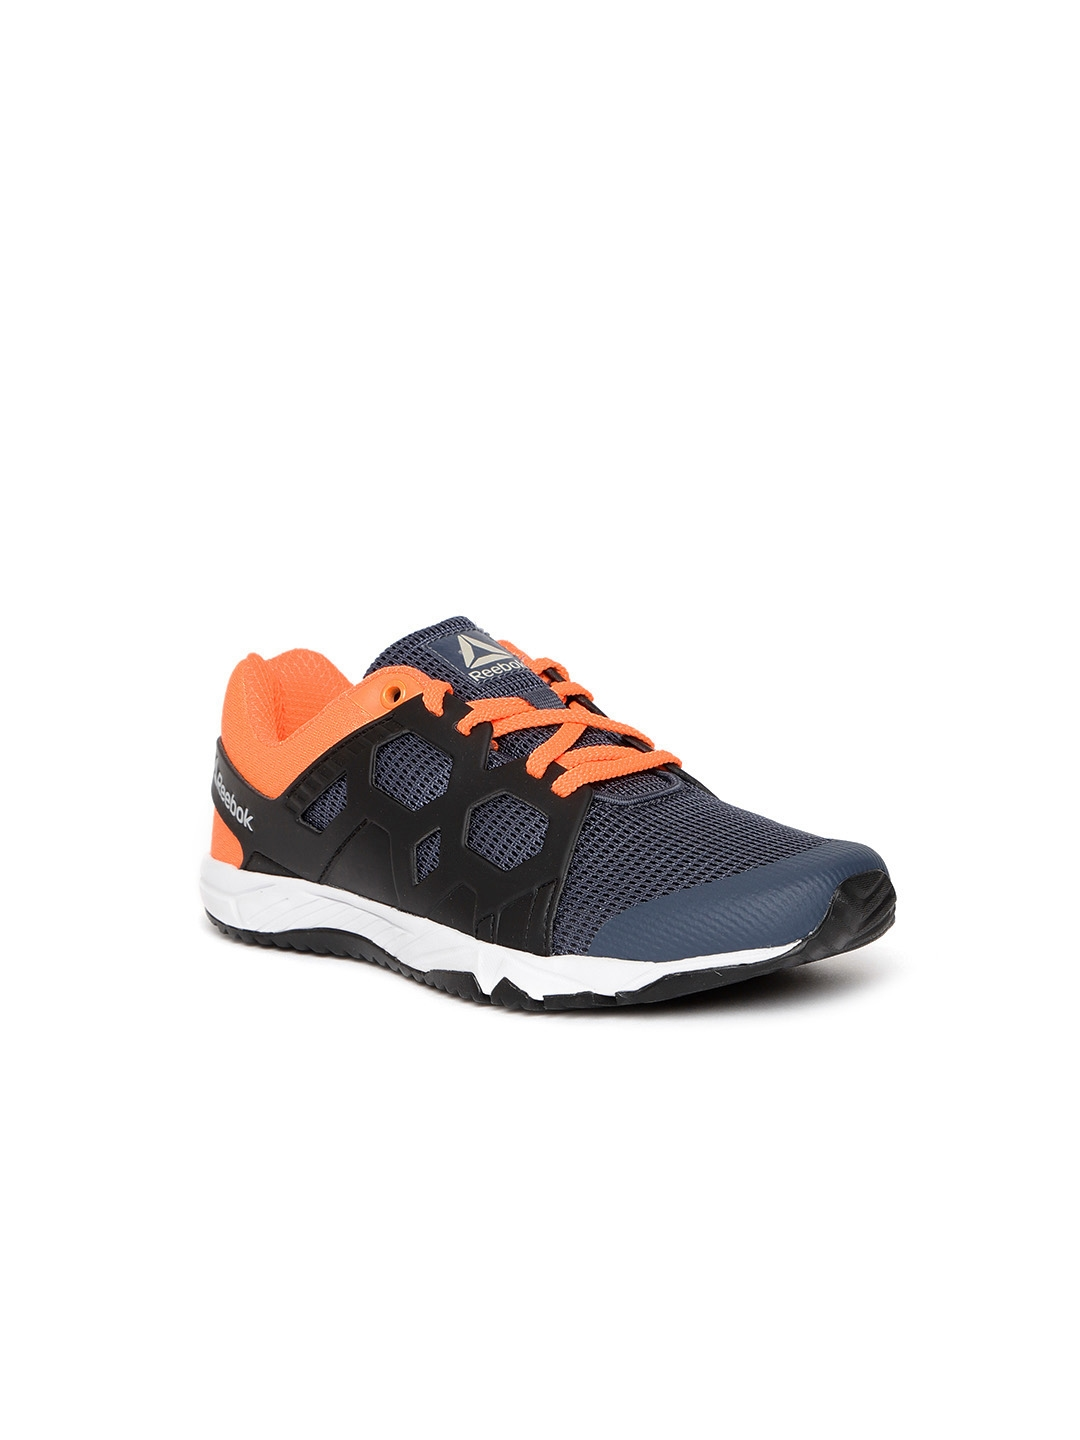 47818f52ad95 Buy Reebok Boys Grey Gusto Junior Running Shoes - Sports Shoes for ...